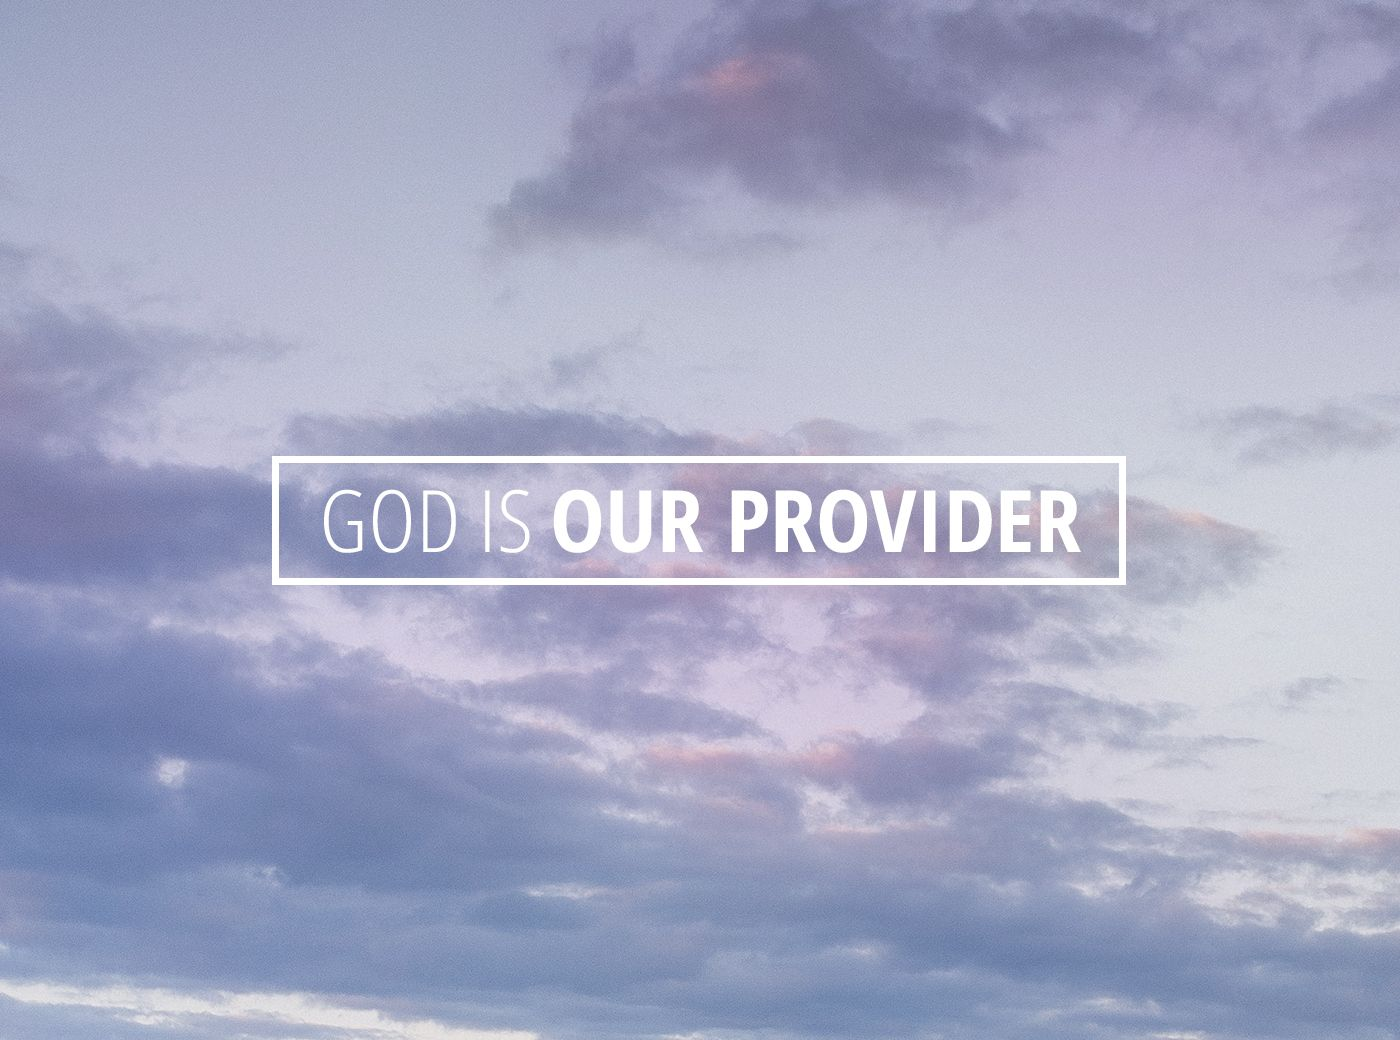 God is Our Provider | Devotional reading, Daily devotional, God